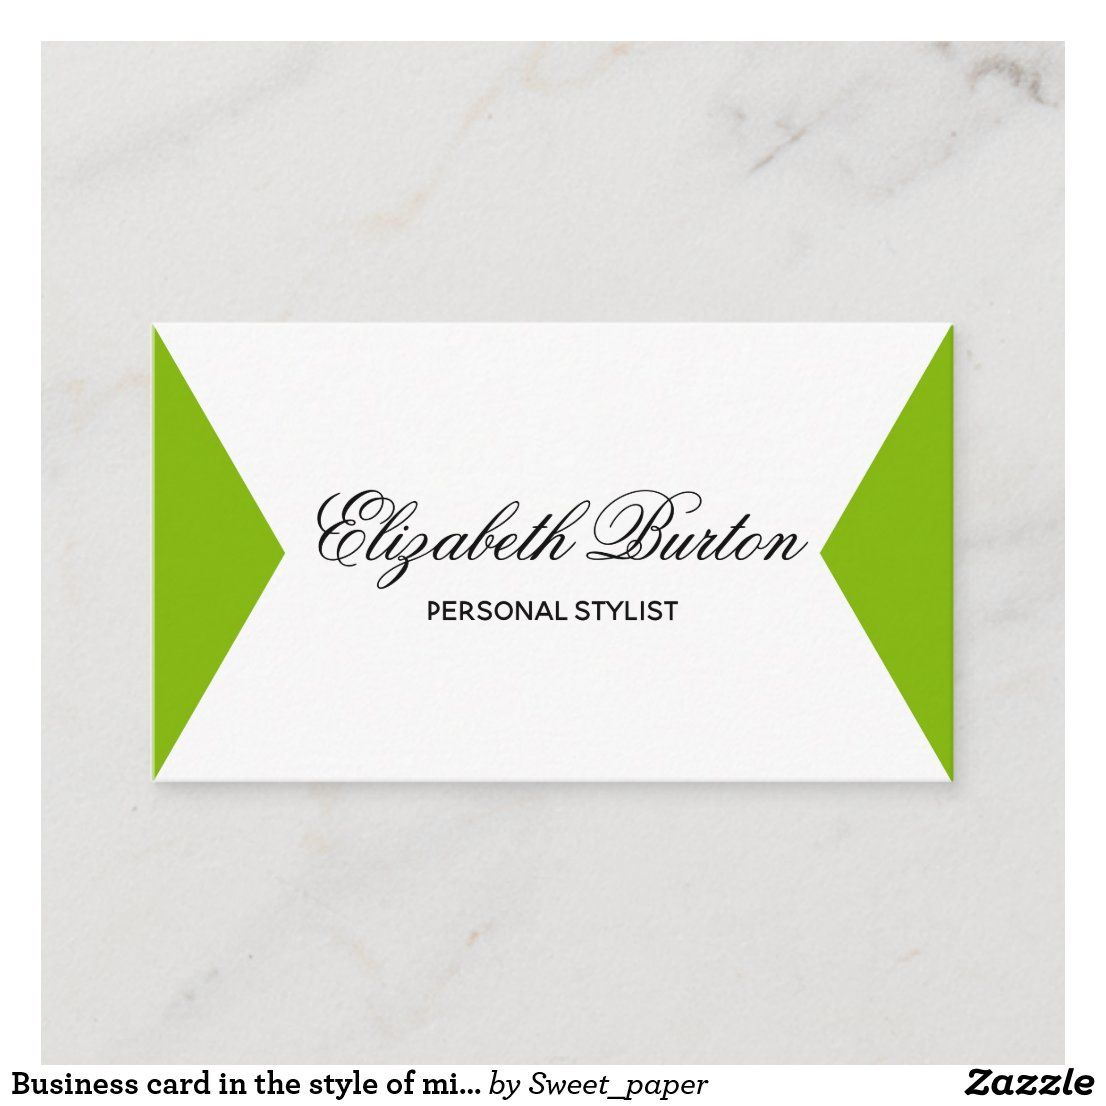 Business Card In The Style Of Minimalism Zazzle Com In 2021 Zazzle Business Cards Business Cards Quality Cards